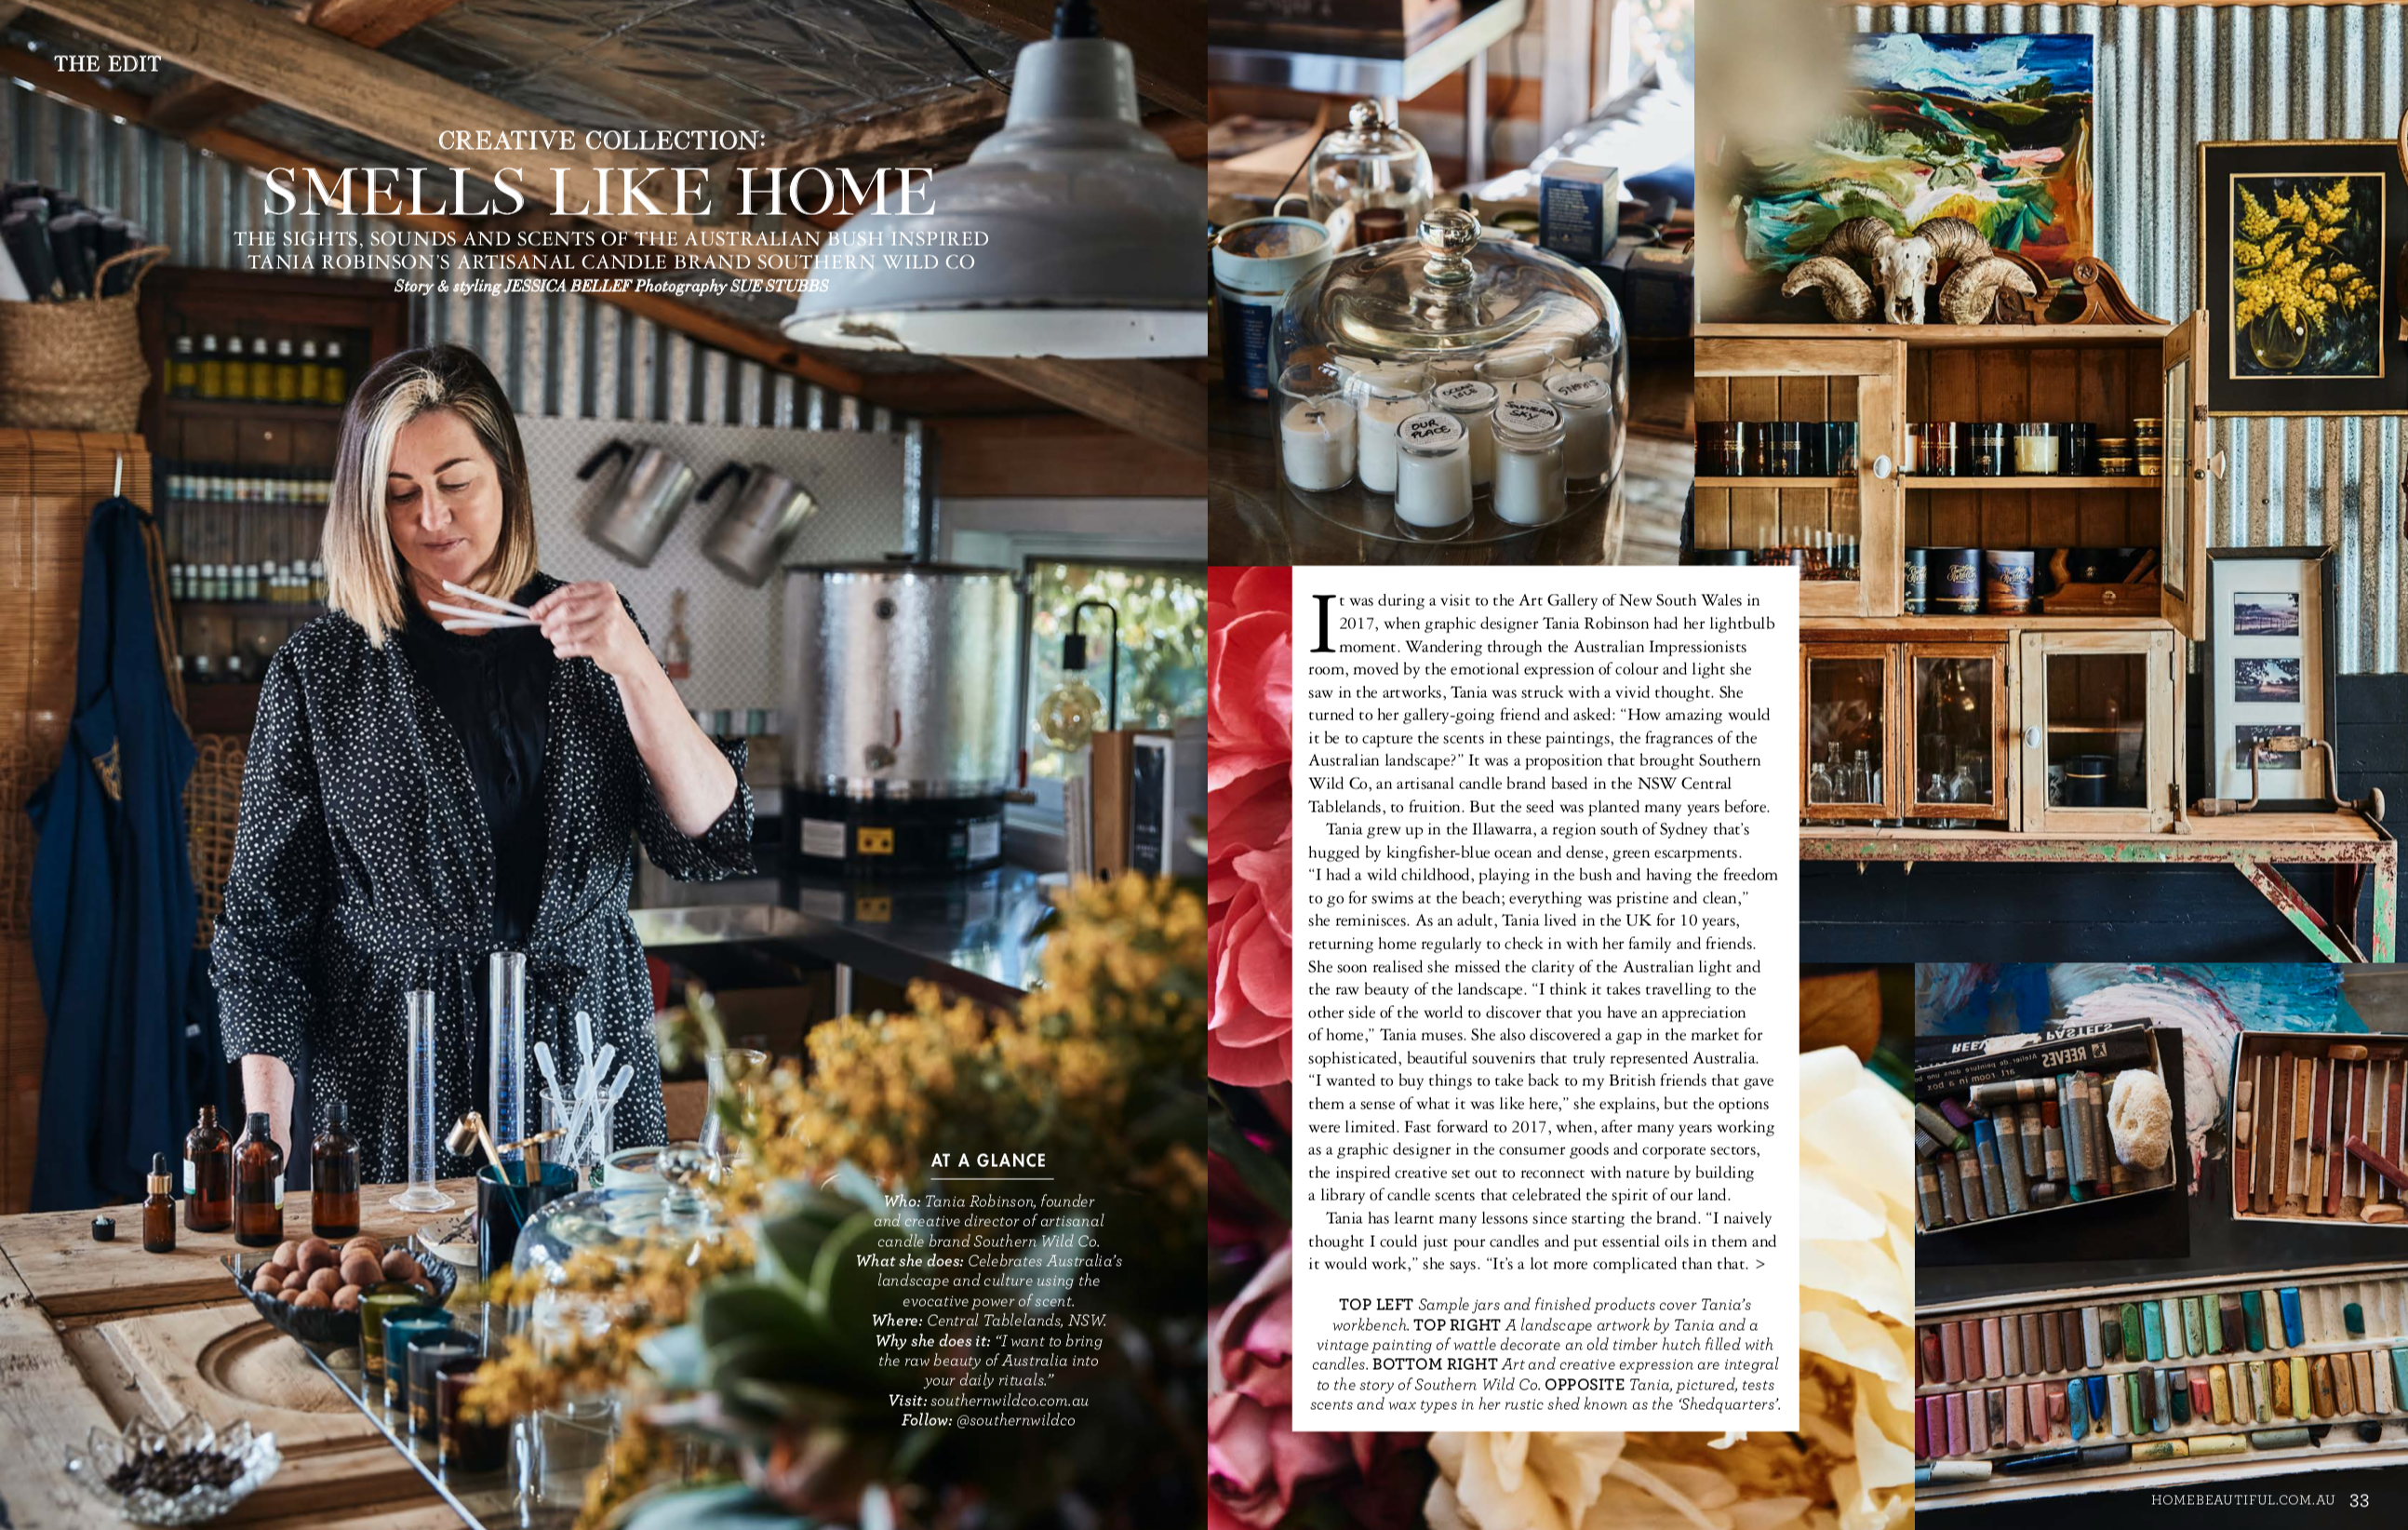 Creative profile feature writing for Home Beautiful, photography by Sue Stubbs